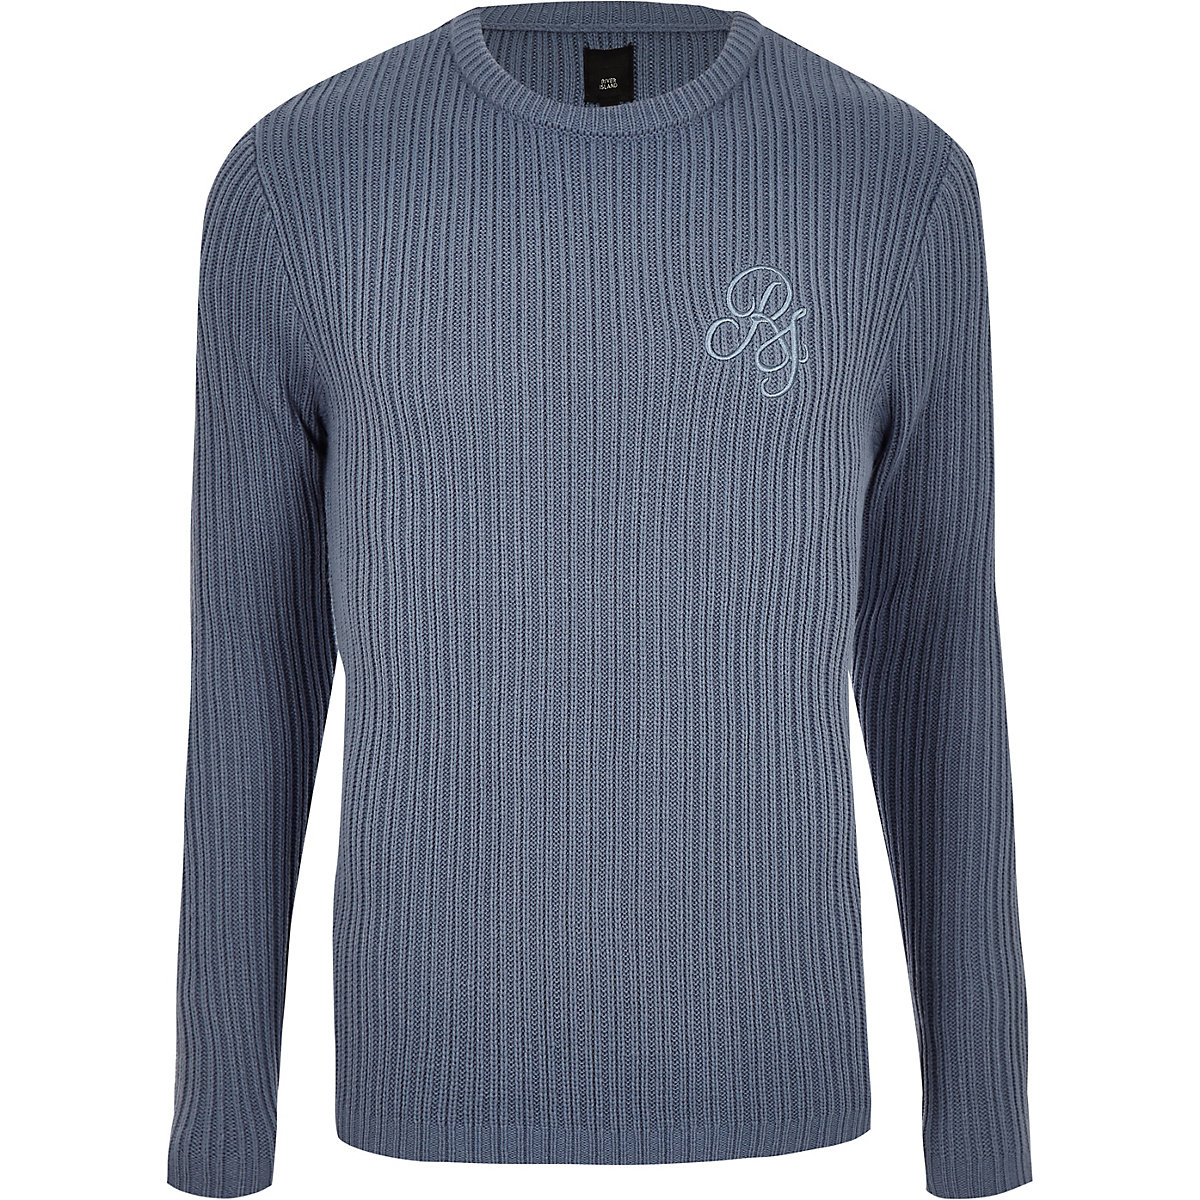 Light blue muscle fit rib crew neck jumper